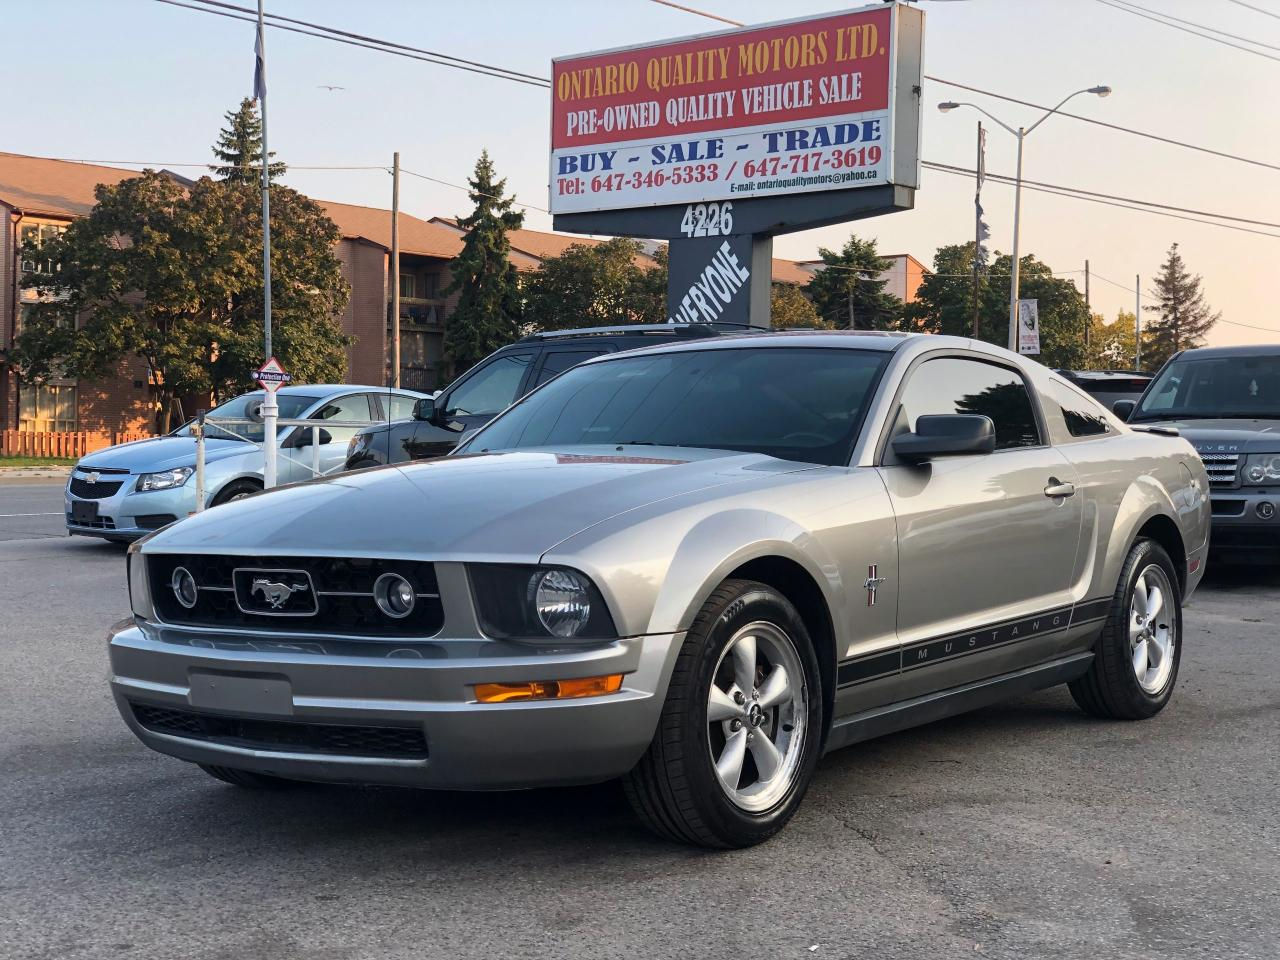 Ontario Quality Motors >> Used 2008 Ford Mustang For Sale In Toronto Ontario